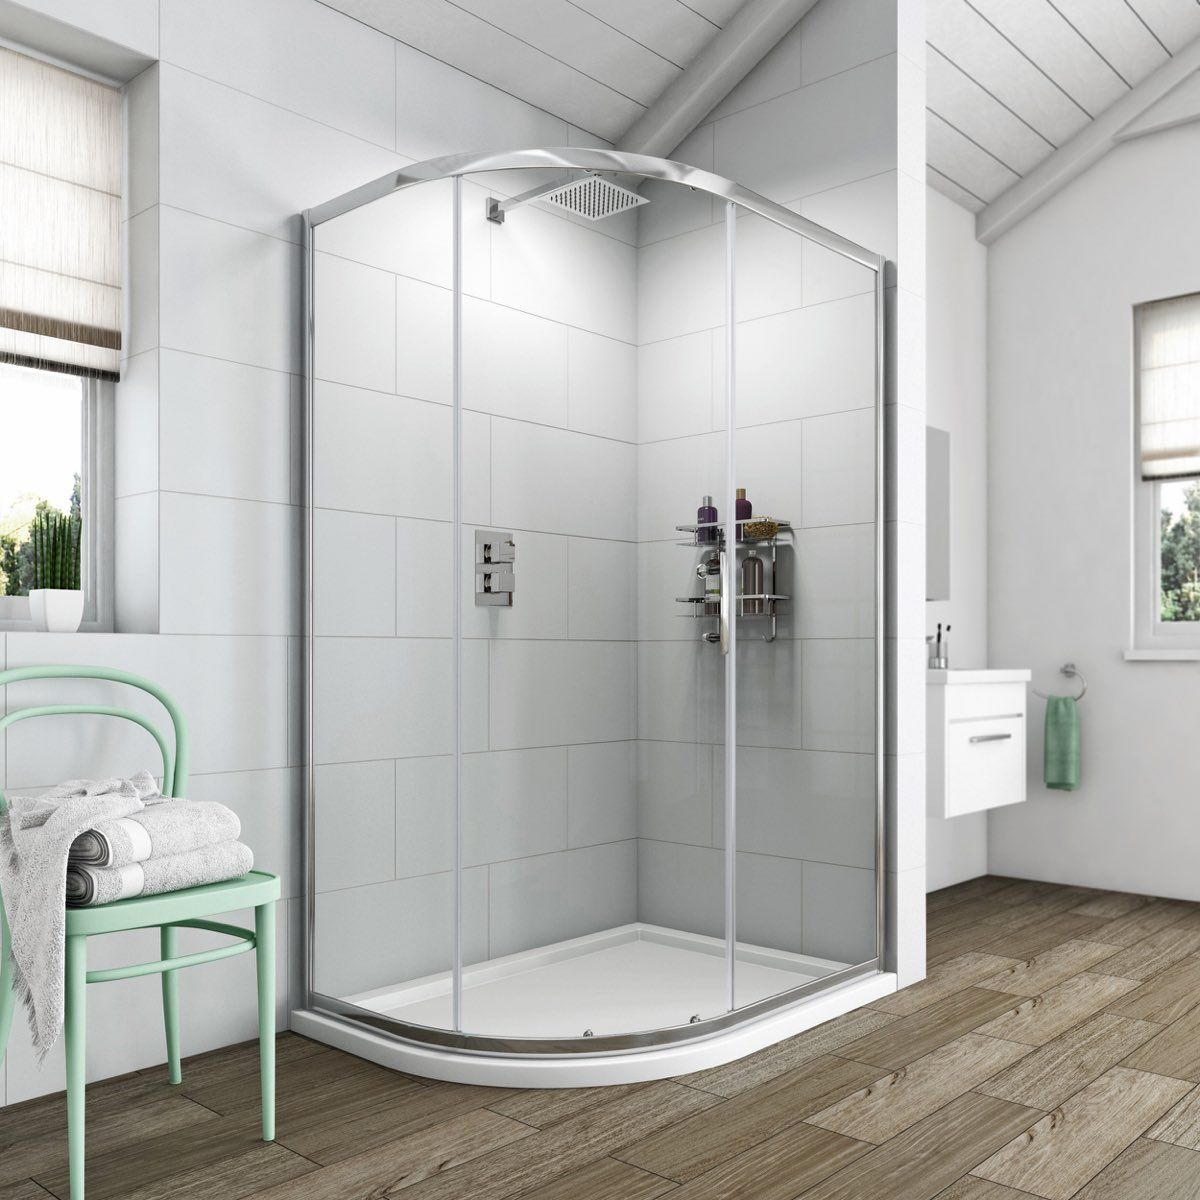 See Our Clarity 6mm Single Door Offset Quadrant Shower Enclosure Offer Pack Plus Many More